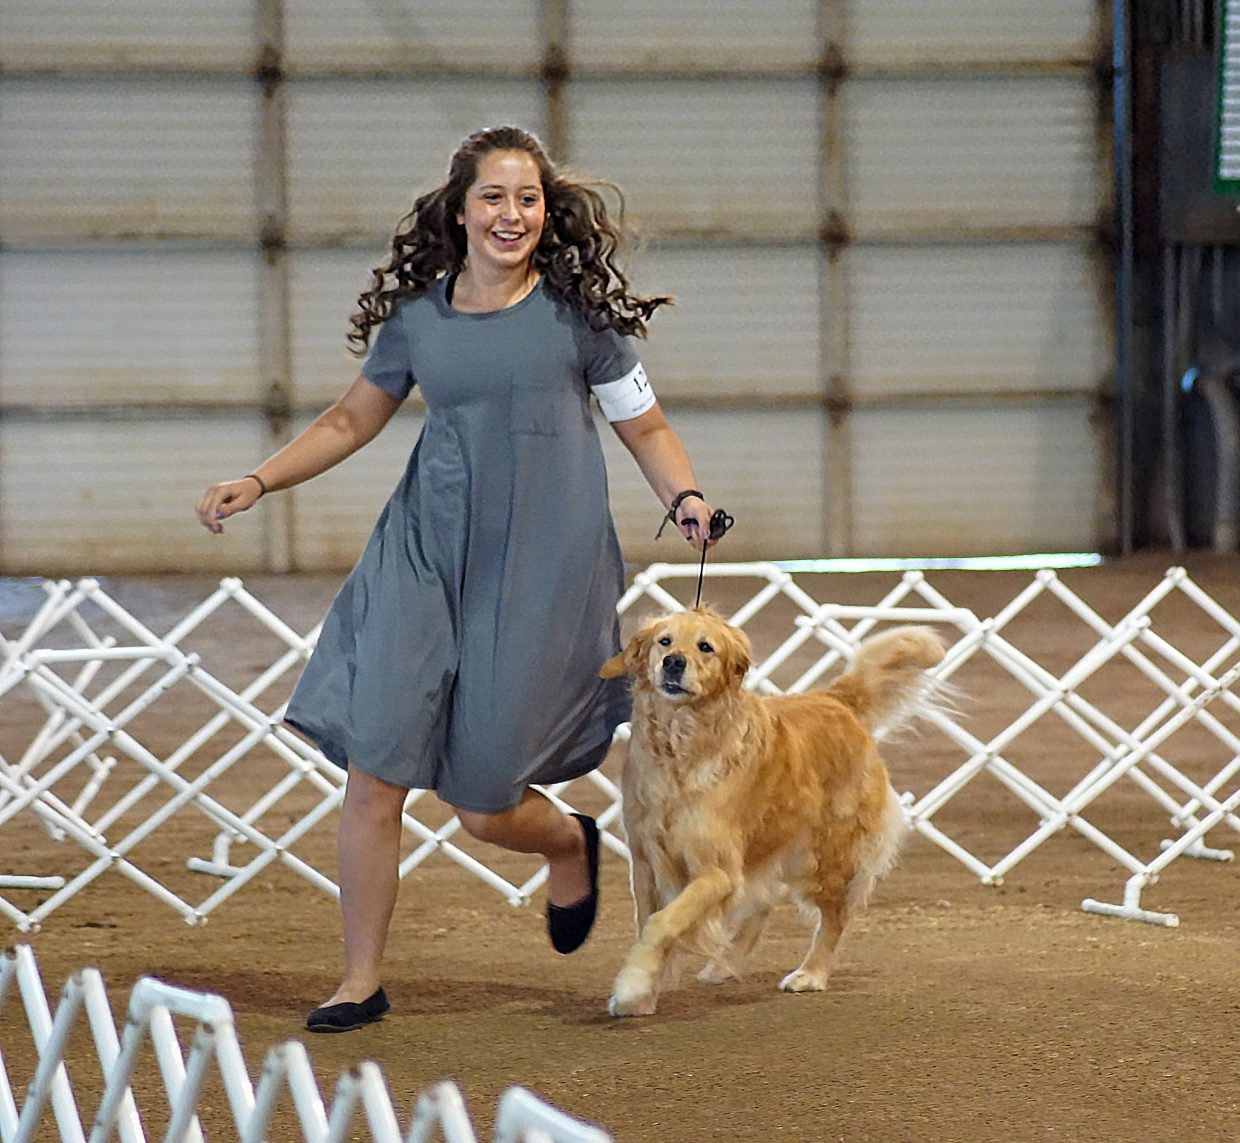 Allison Jacobson and her golden retriever, Bella, trot to show off Bella's gait.